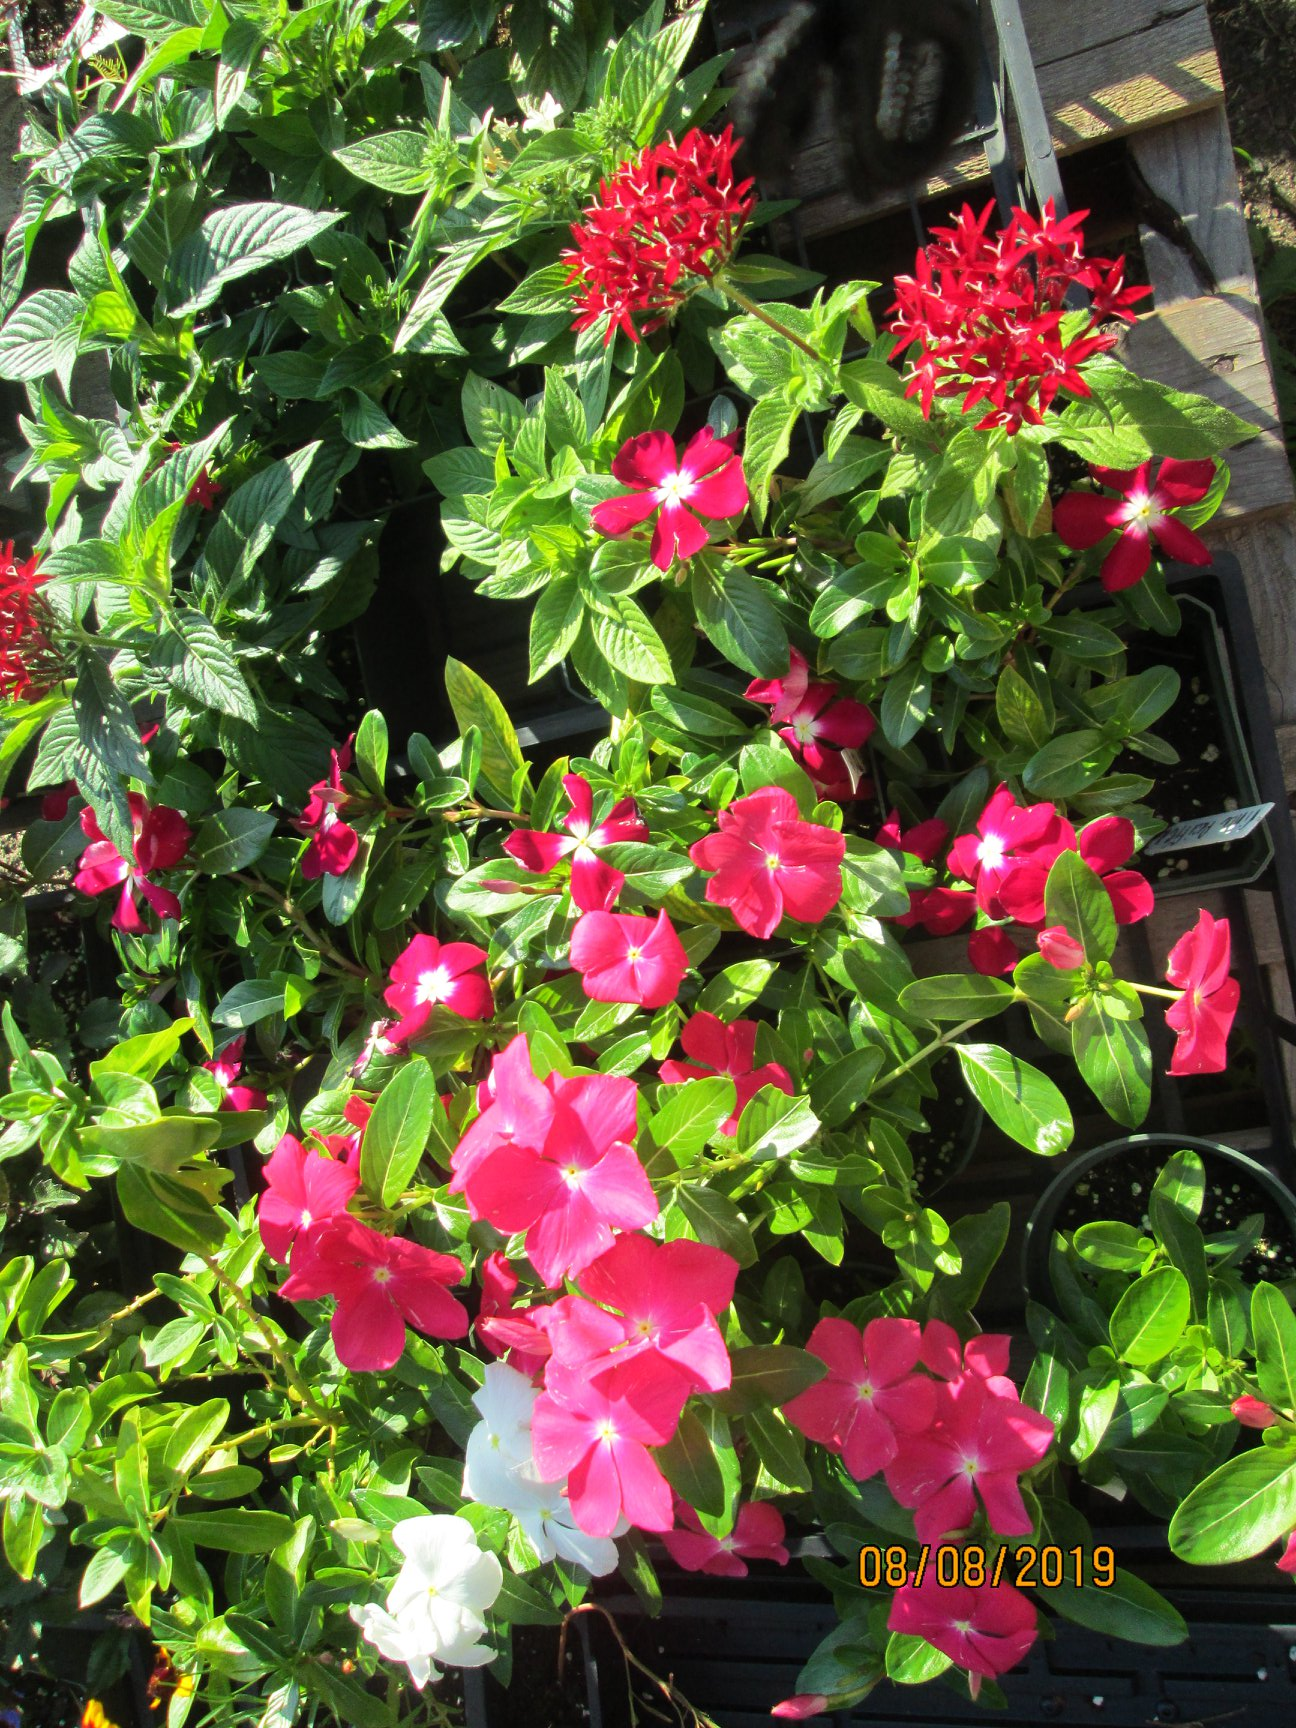 Red flowers at MV Greenhouse